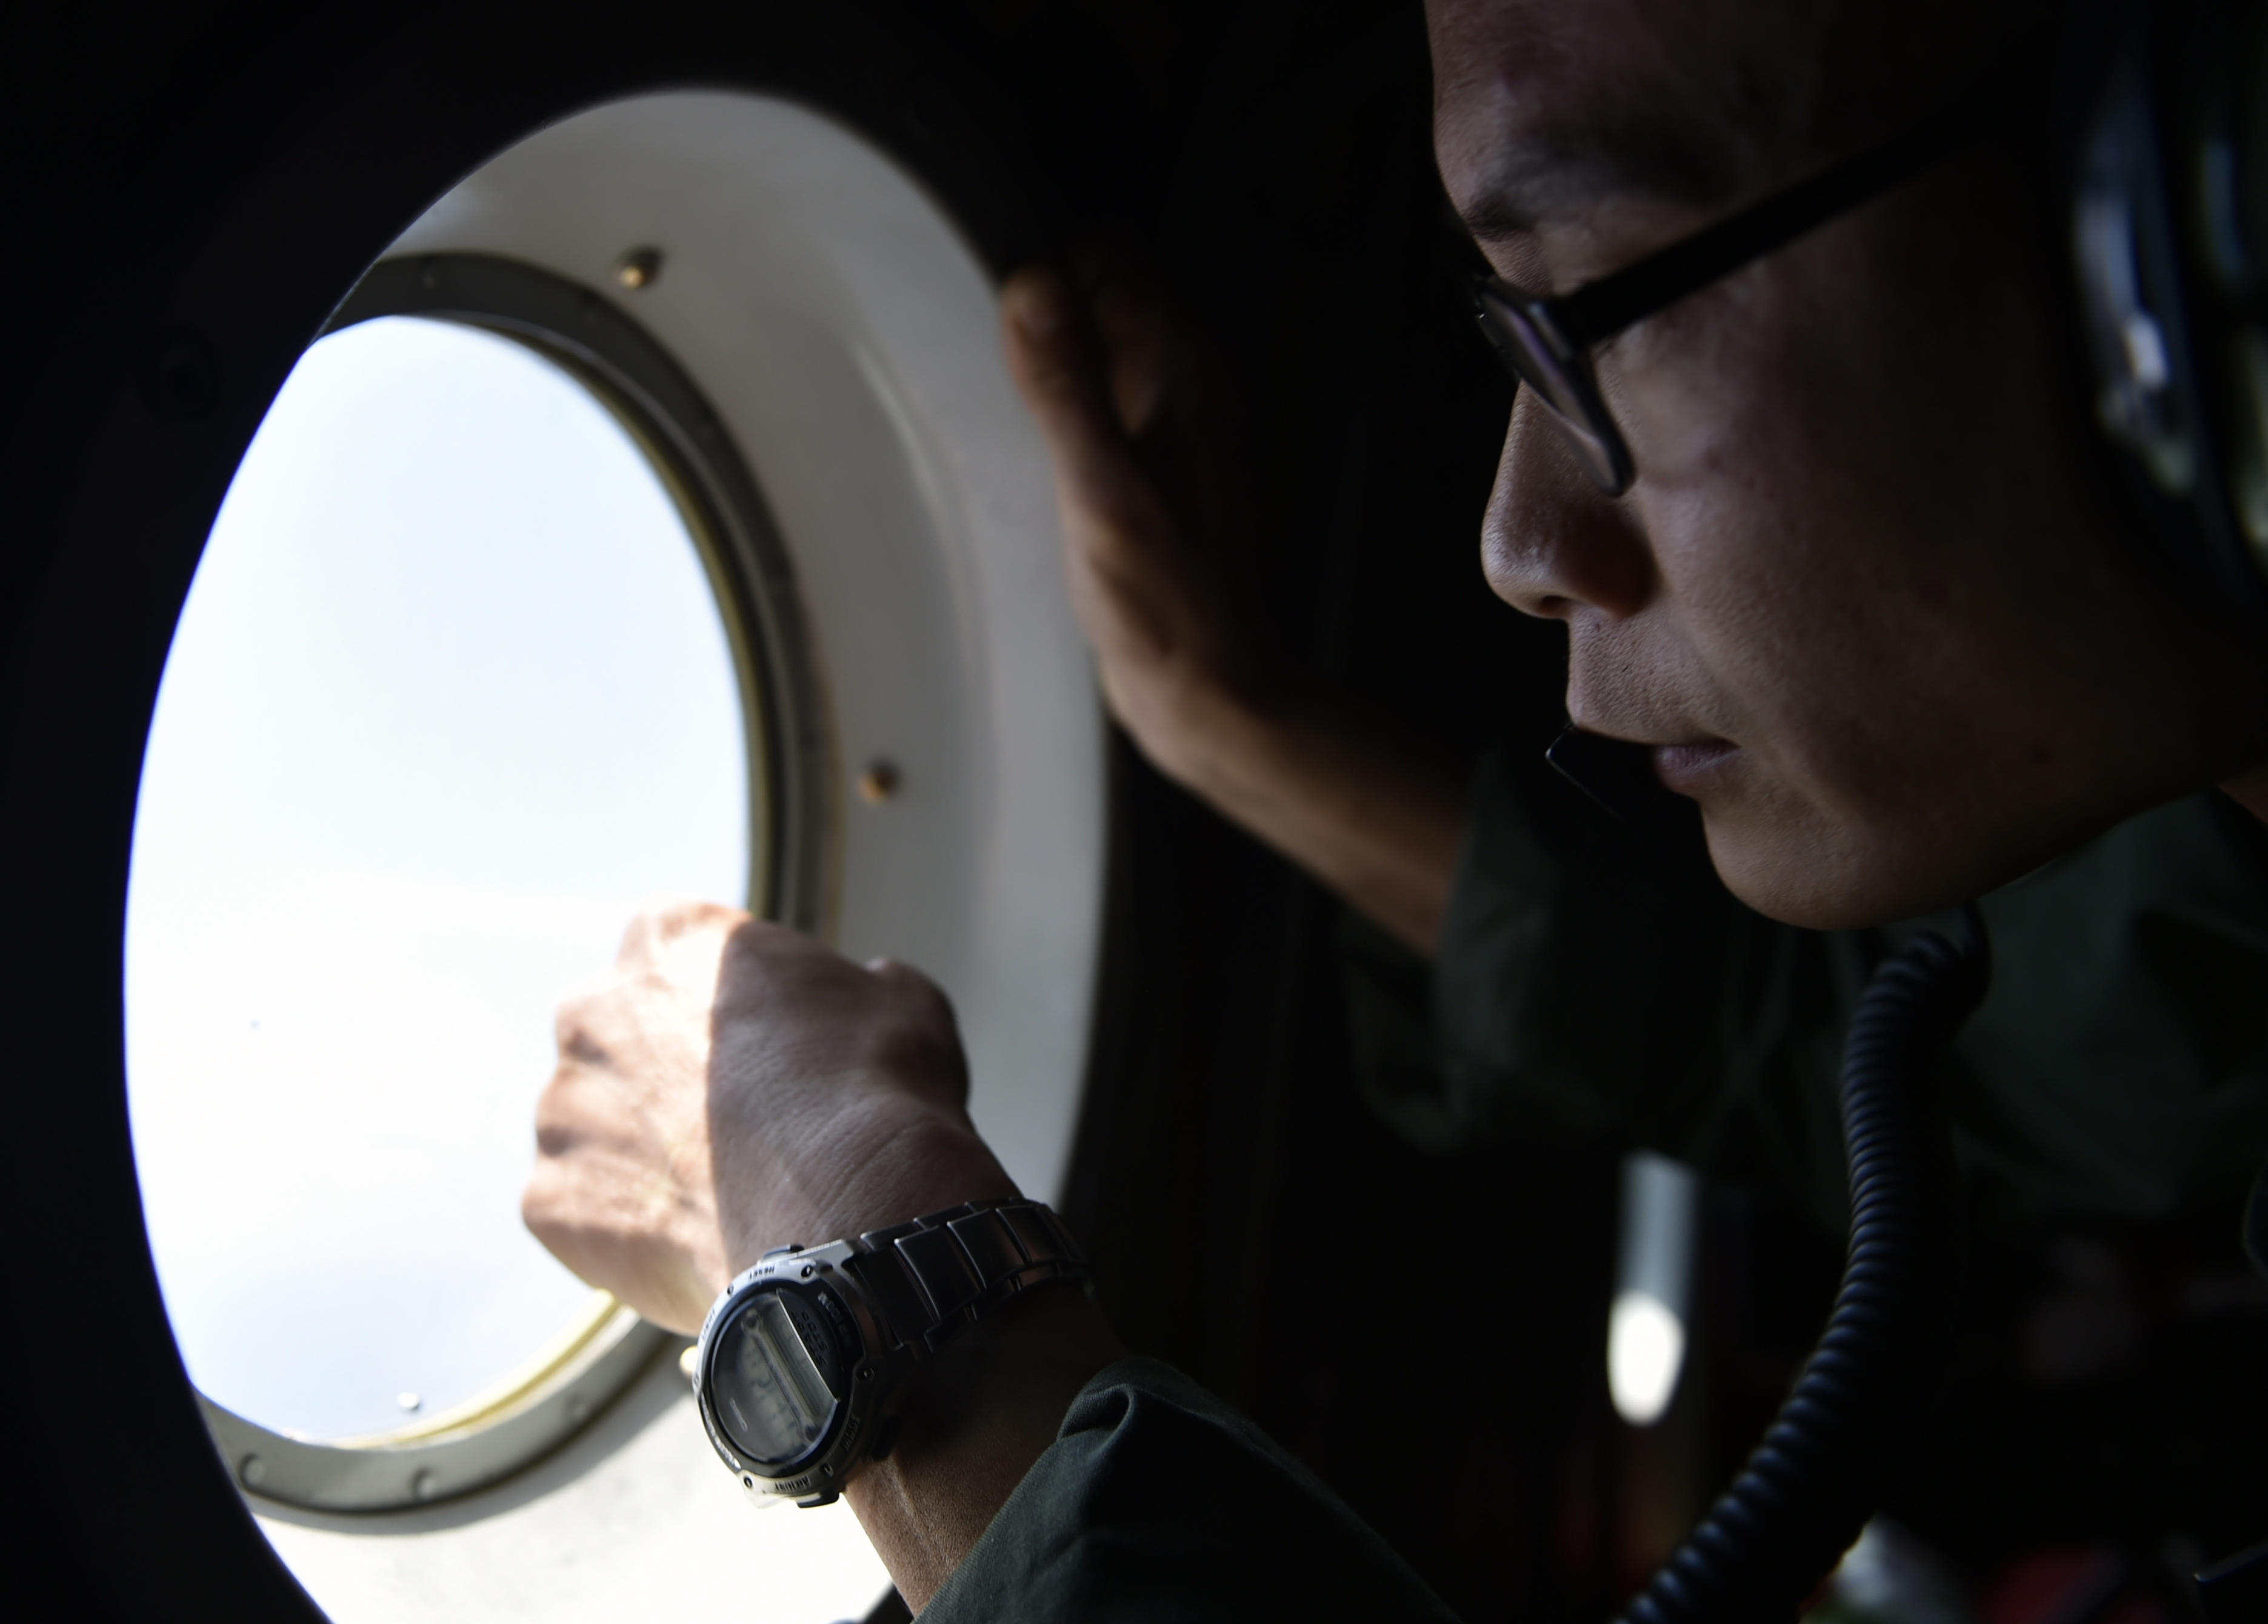 A member of the Taiwan air force looks out a window from a C-130 transport plane during a visit to take journalists to Taiping Island, part of the Spratlys Islands in the South China Sea, on March 23, 2016